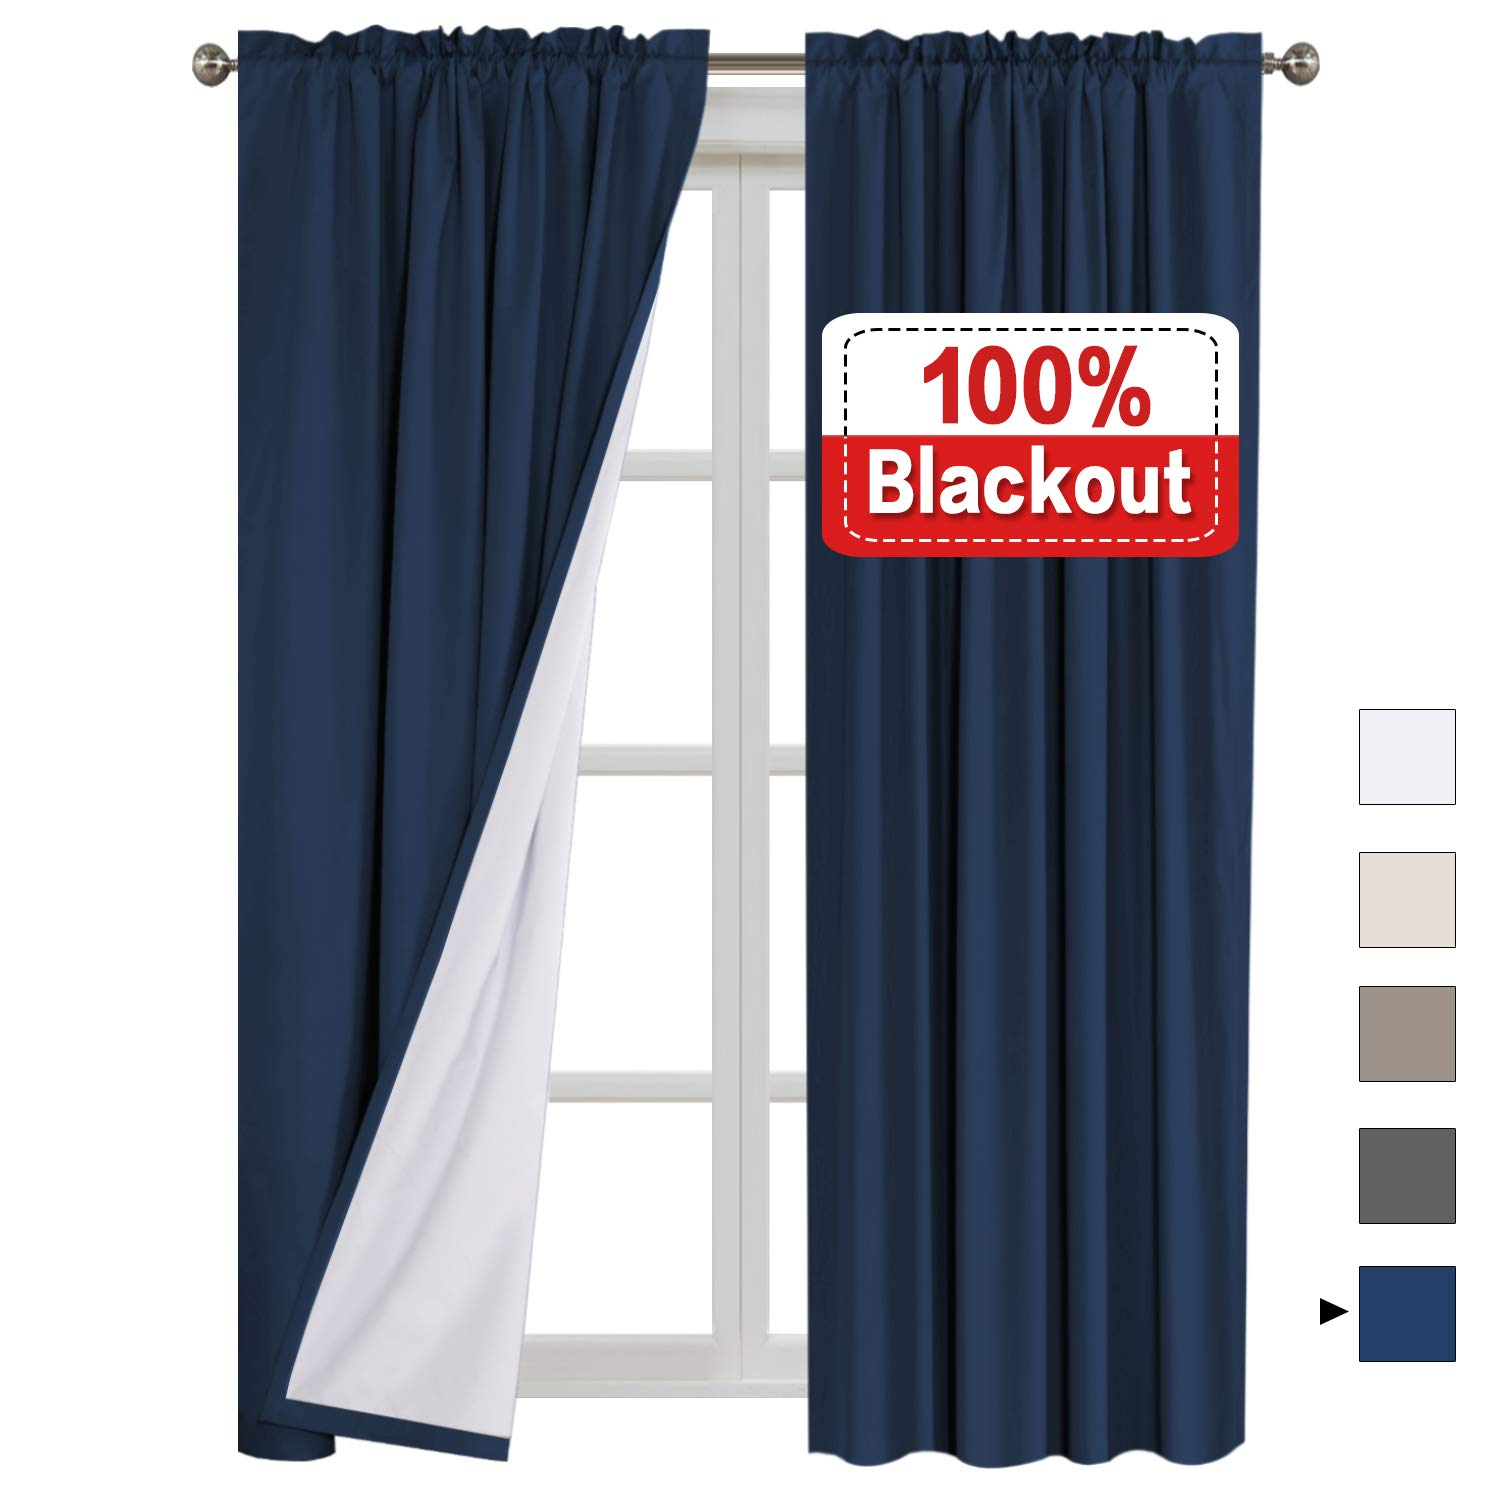 Flamingo P 100% Blackout Curtains Waterproof Fabric Curtains with White Thermal Insulated Liner, Rod Pocket Curtains for Living Room/Bedroom,2 Bonus Tie-Backs (2 Panels W52 x L96 inches, Navy) by Flamingo P